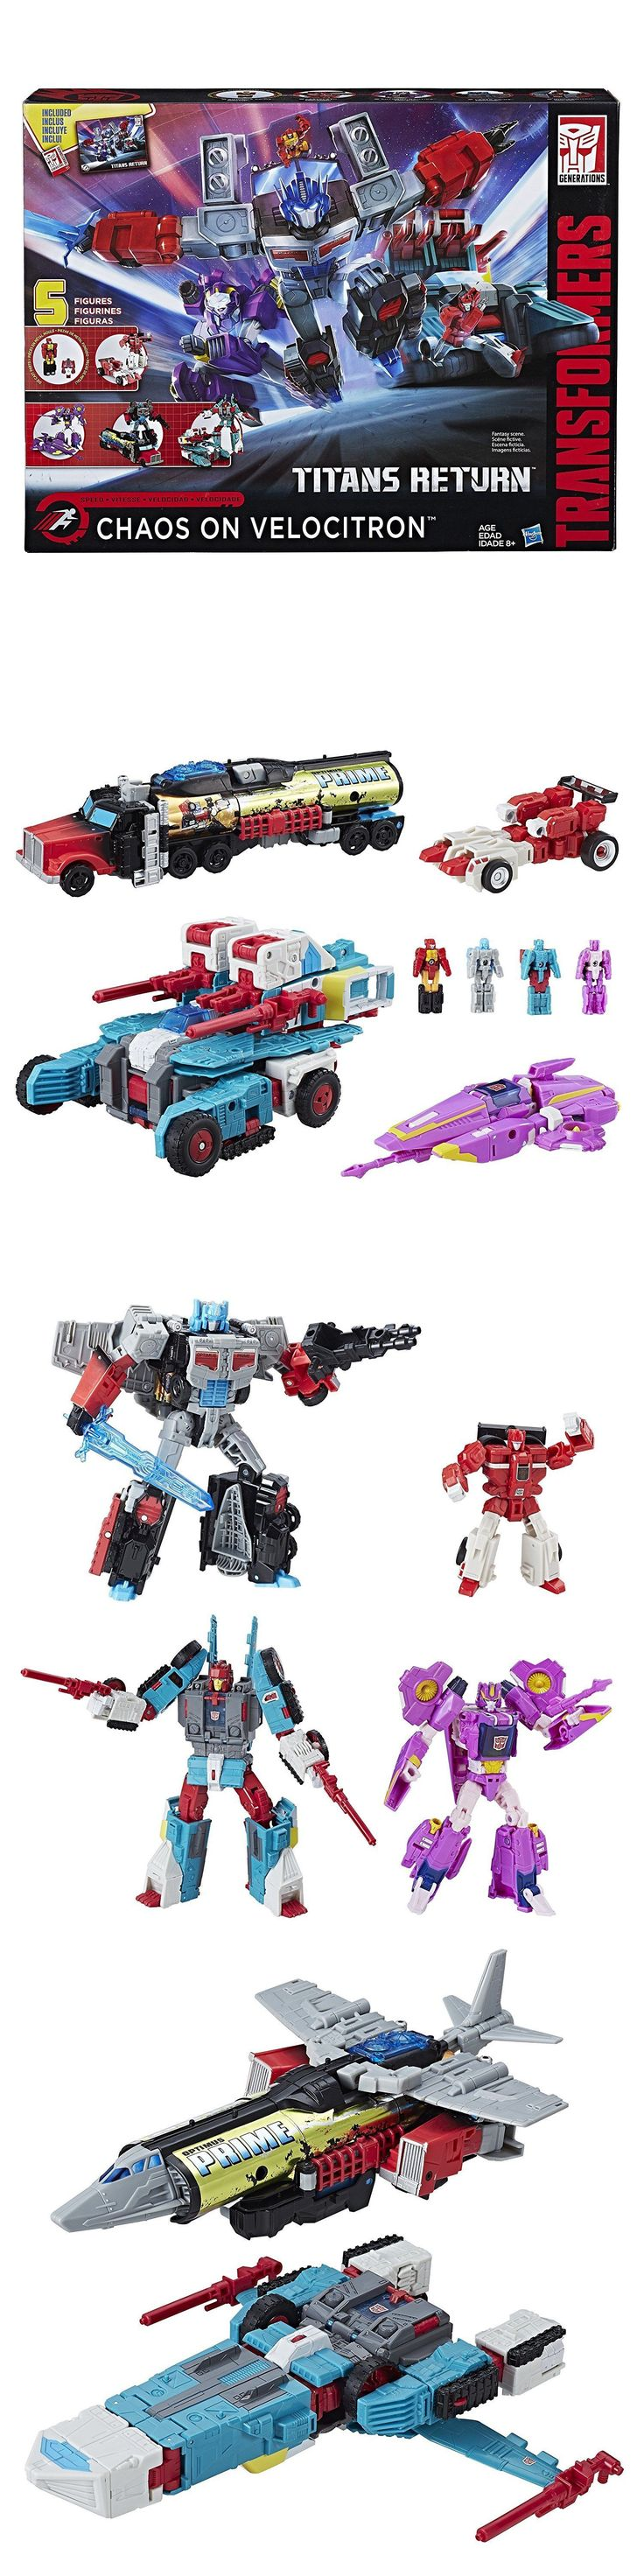 Transformers and Robots 83732: Transformers Titans Return Chaos On Velocitron Tru Exclusive Brand New -> BUY IT NOW ONLY: $114.95 on eBay!